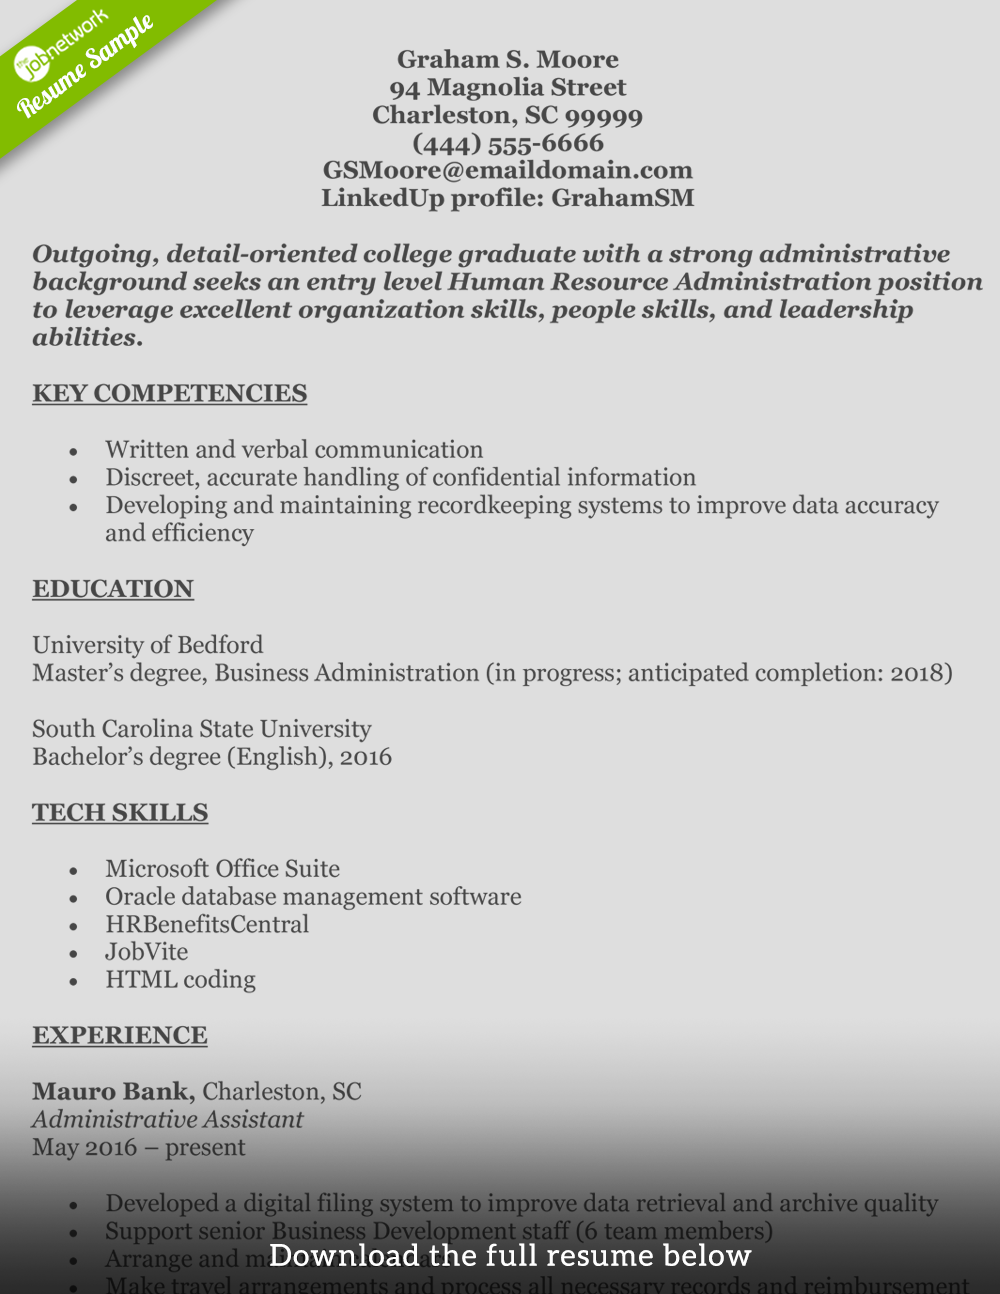 Human Resources Resume Graham  Human Resources Resume Examples